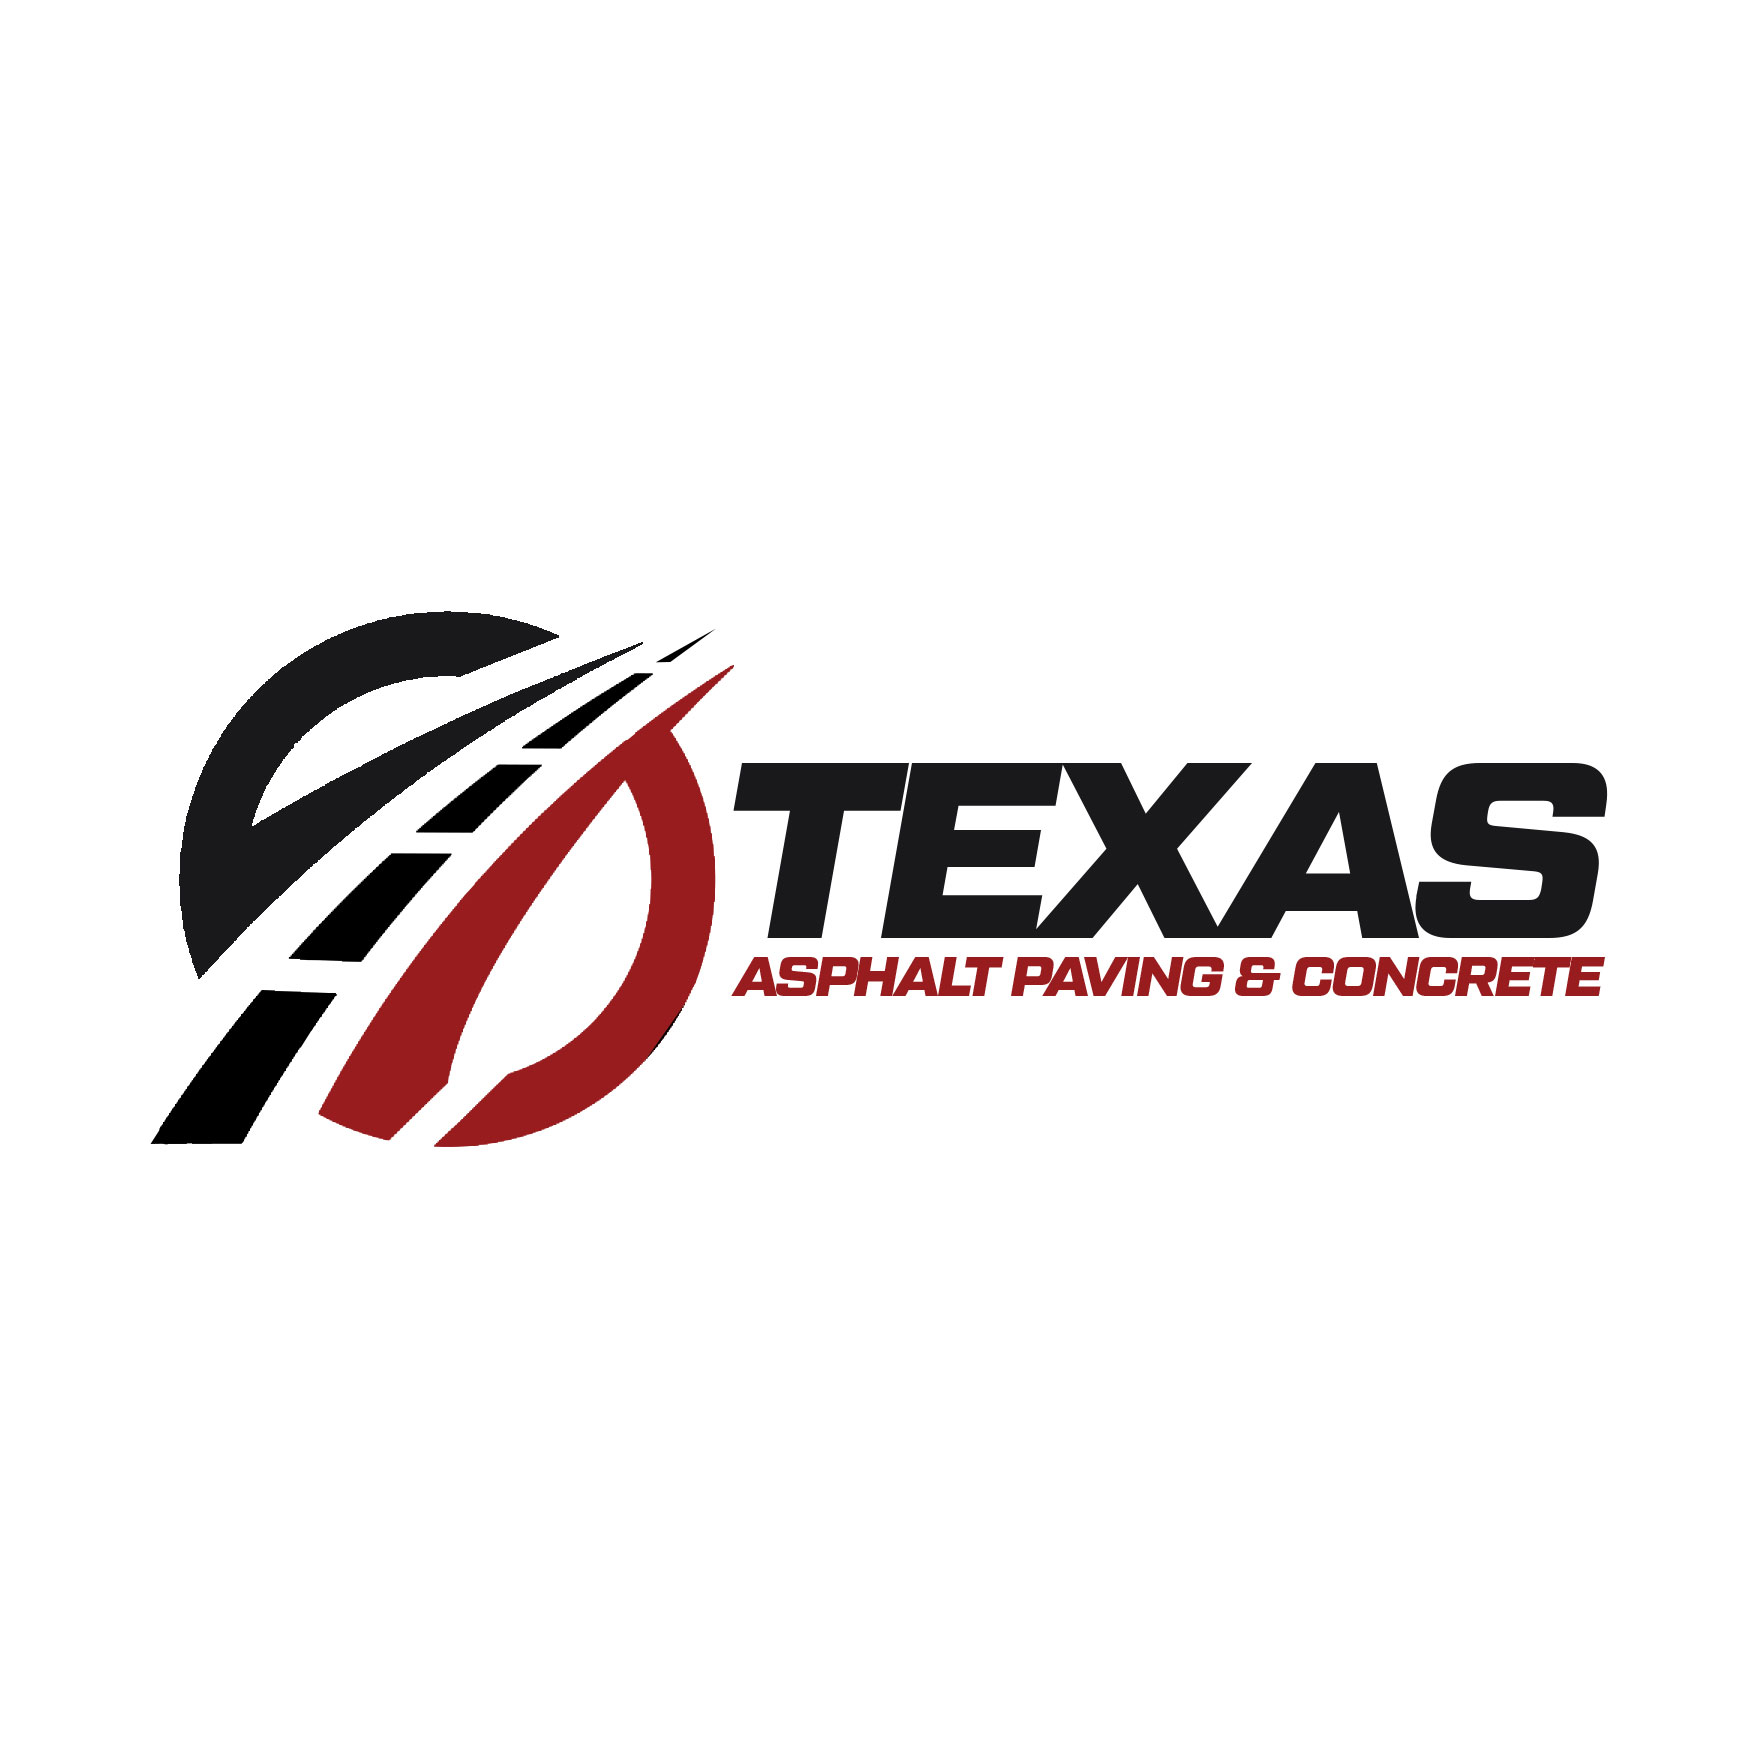 Texas Asphalt Paving & concrete